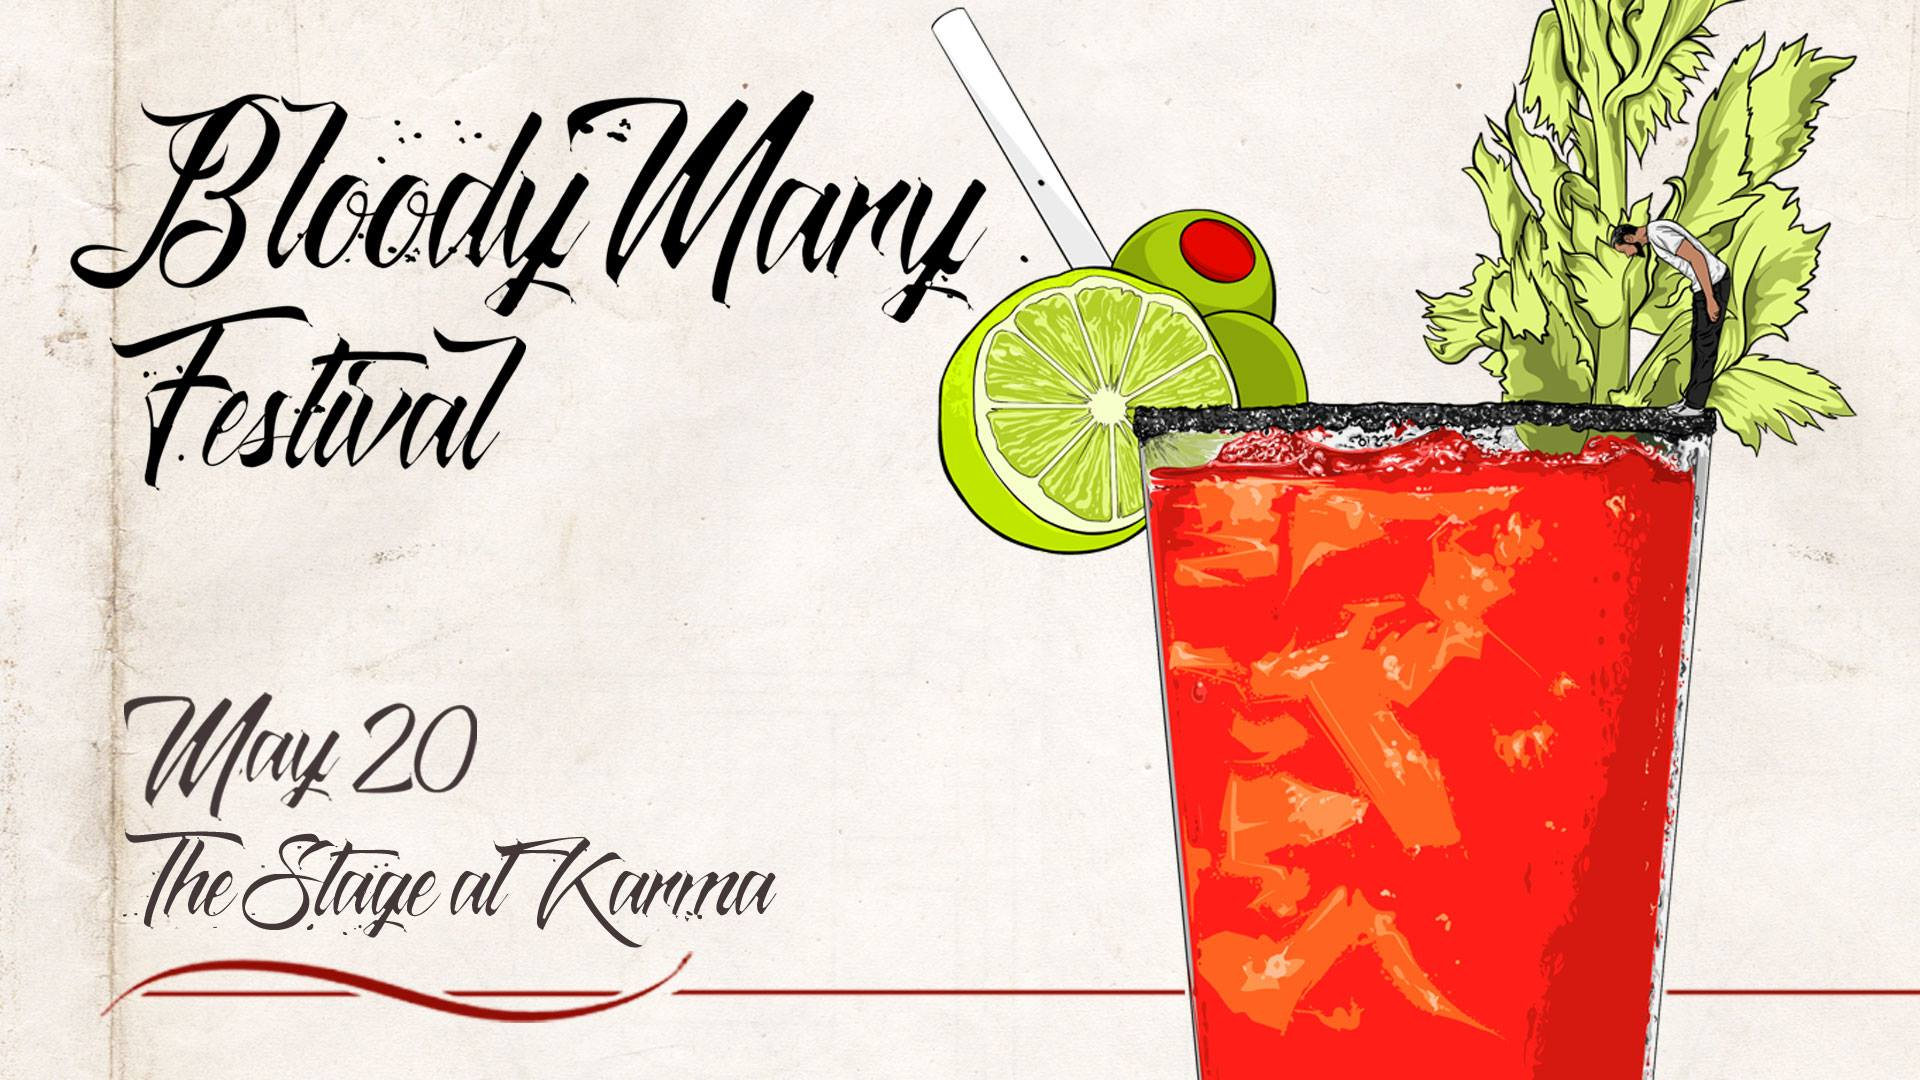 Bloody Mary Festival, May 20th at The Stage at Karma